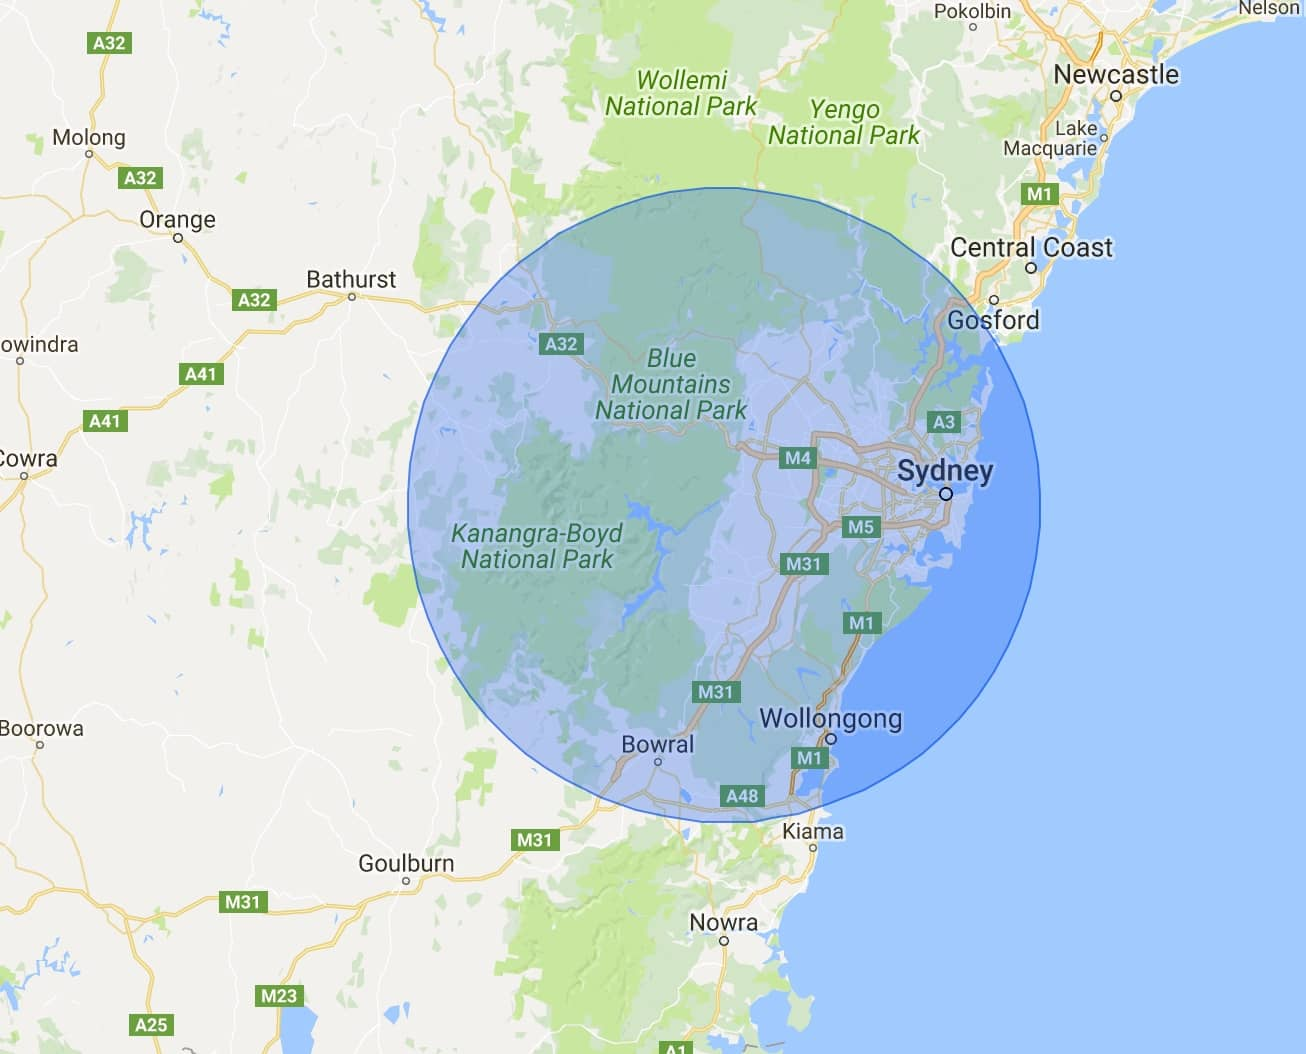 brisbane service locations